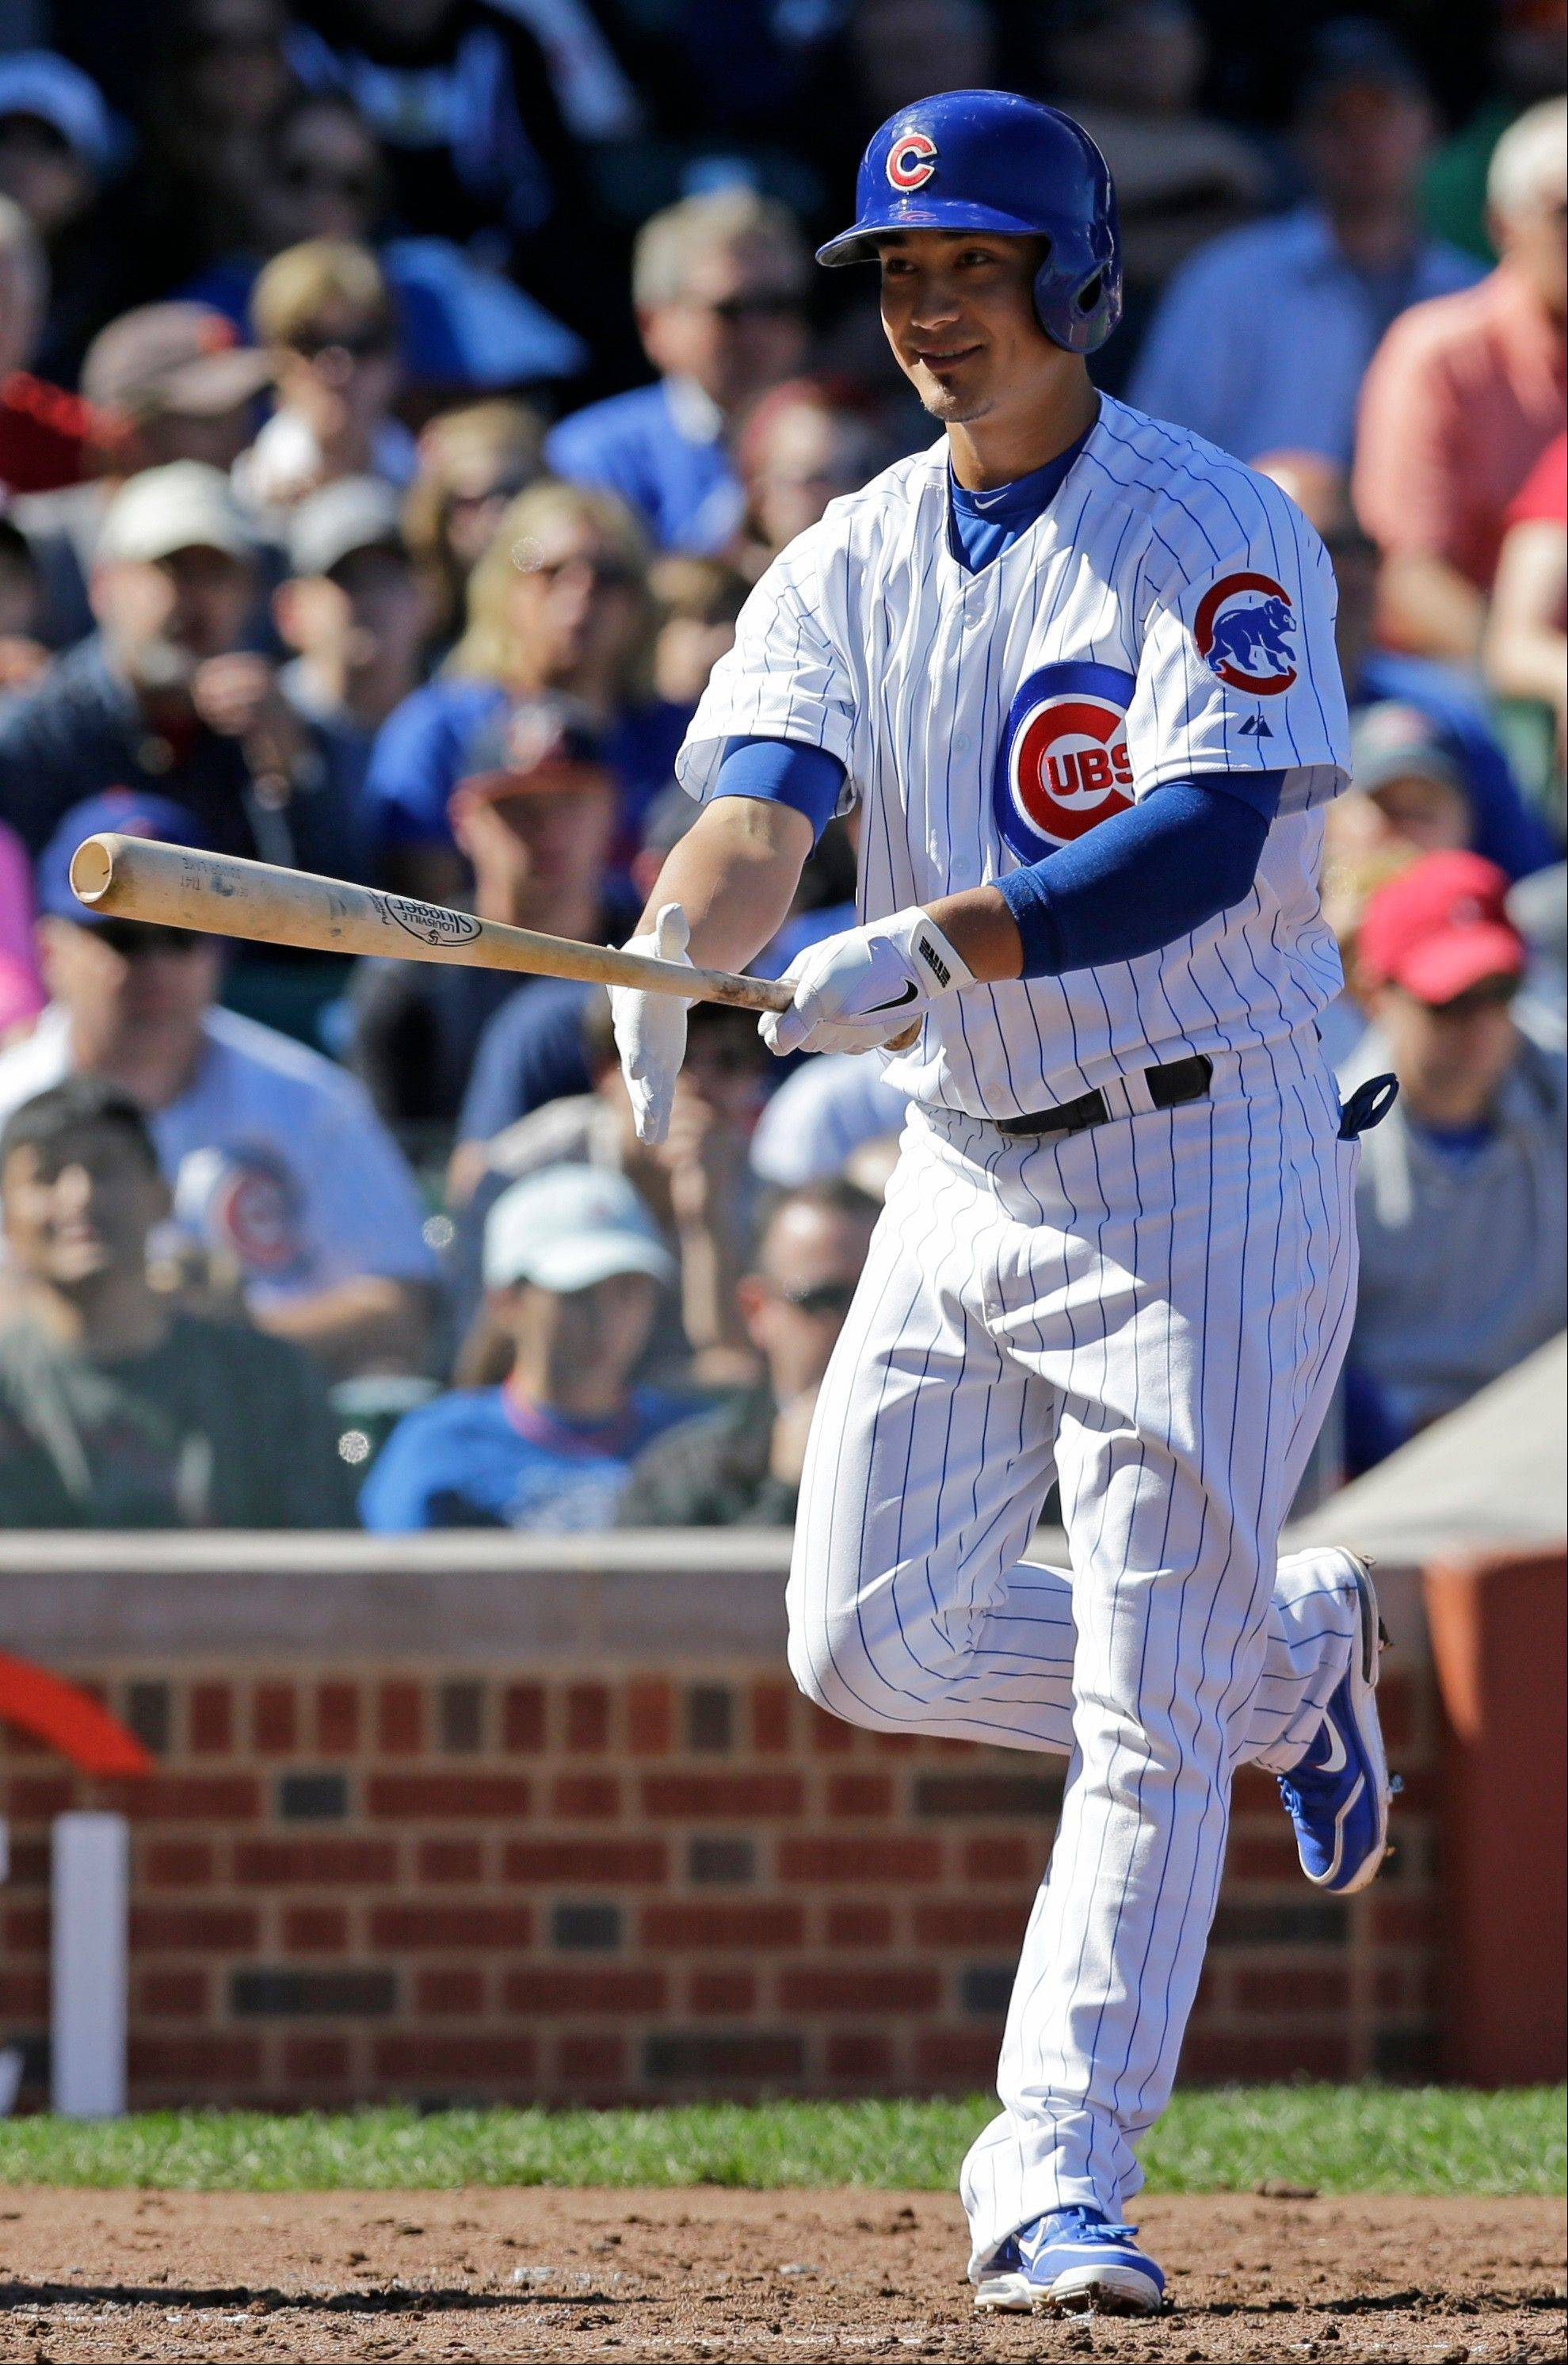 Chicago Cubs hitter Darwin Barney reacts after striking out during the second inning of a baseball game against the Atlanta Braves, Sunday, Sept. 22, 2013, in Chicago.